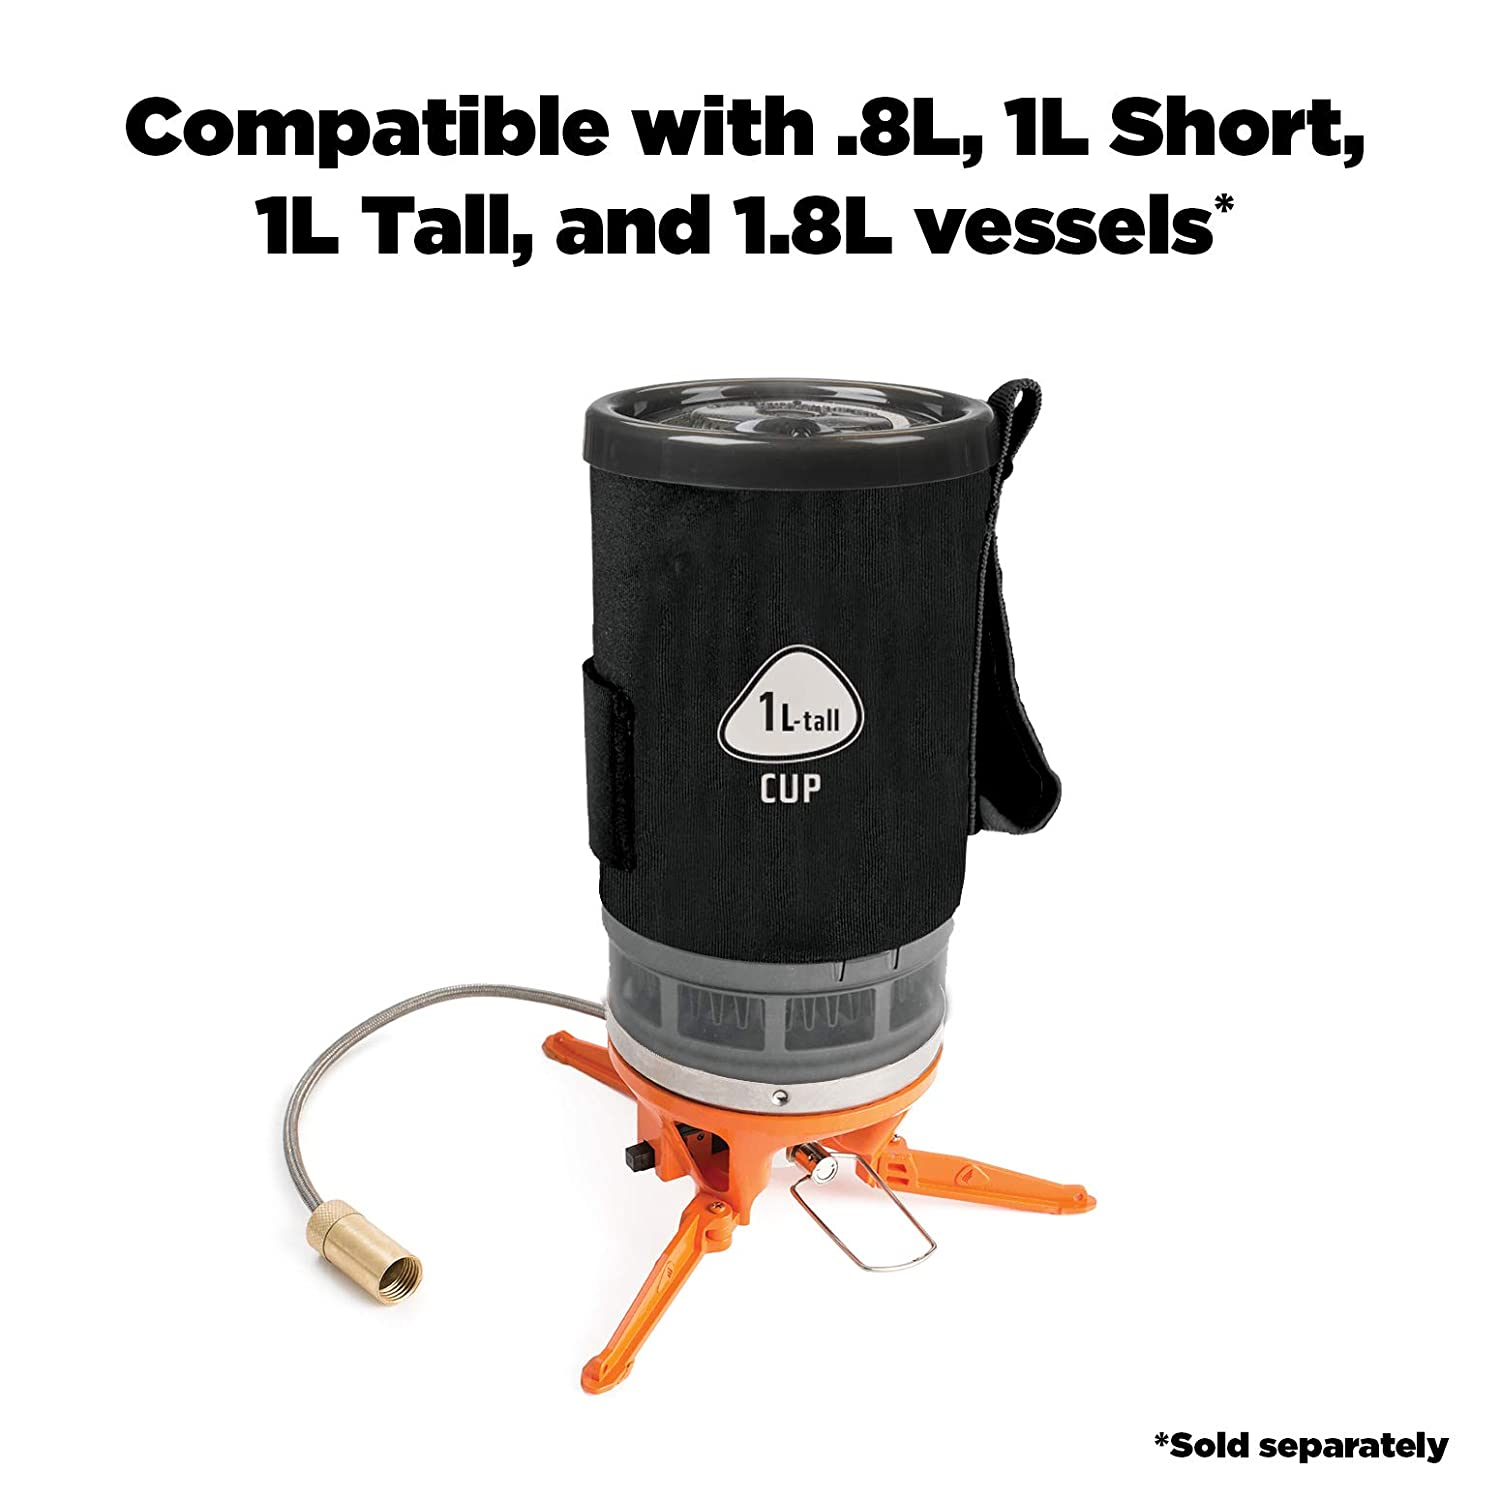 Jetboil Luna Satellite Side Burner for Jetboil or Eureka Camping Stoves